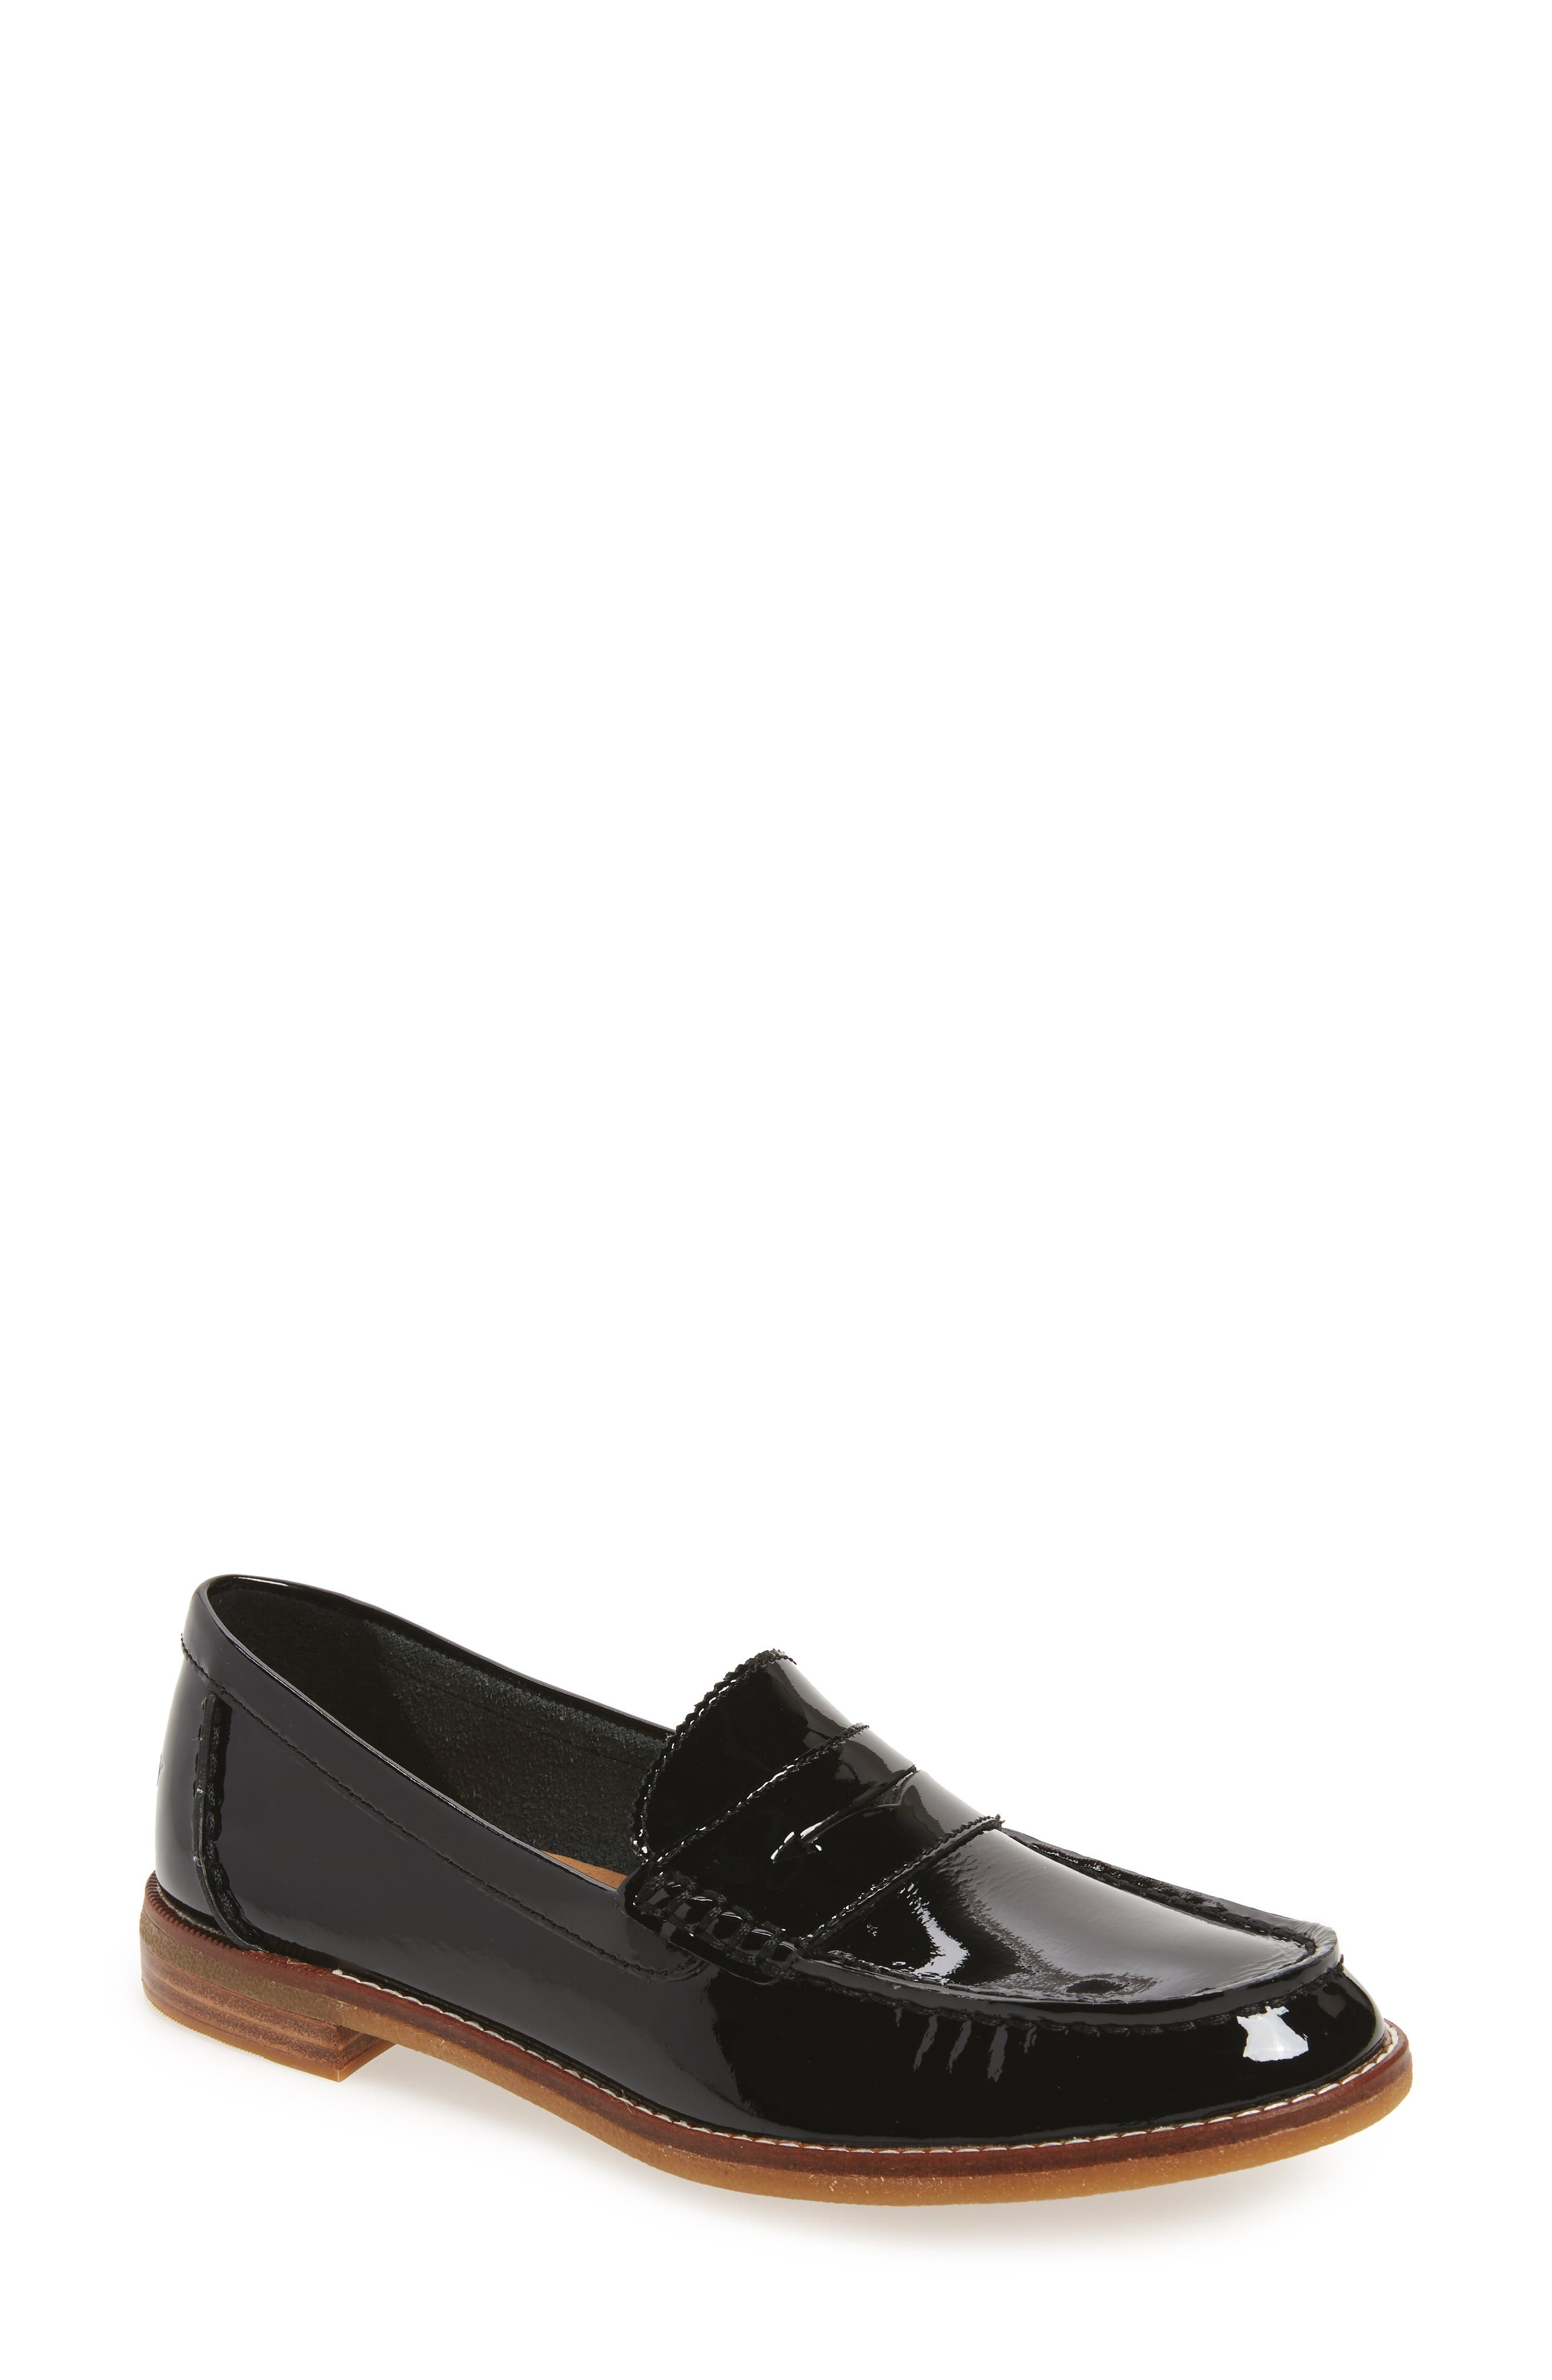 Seaport Penny Loafer,                             Main thumbnail 1, color,                             BLACK PATENT LEATHER